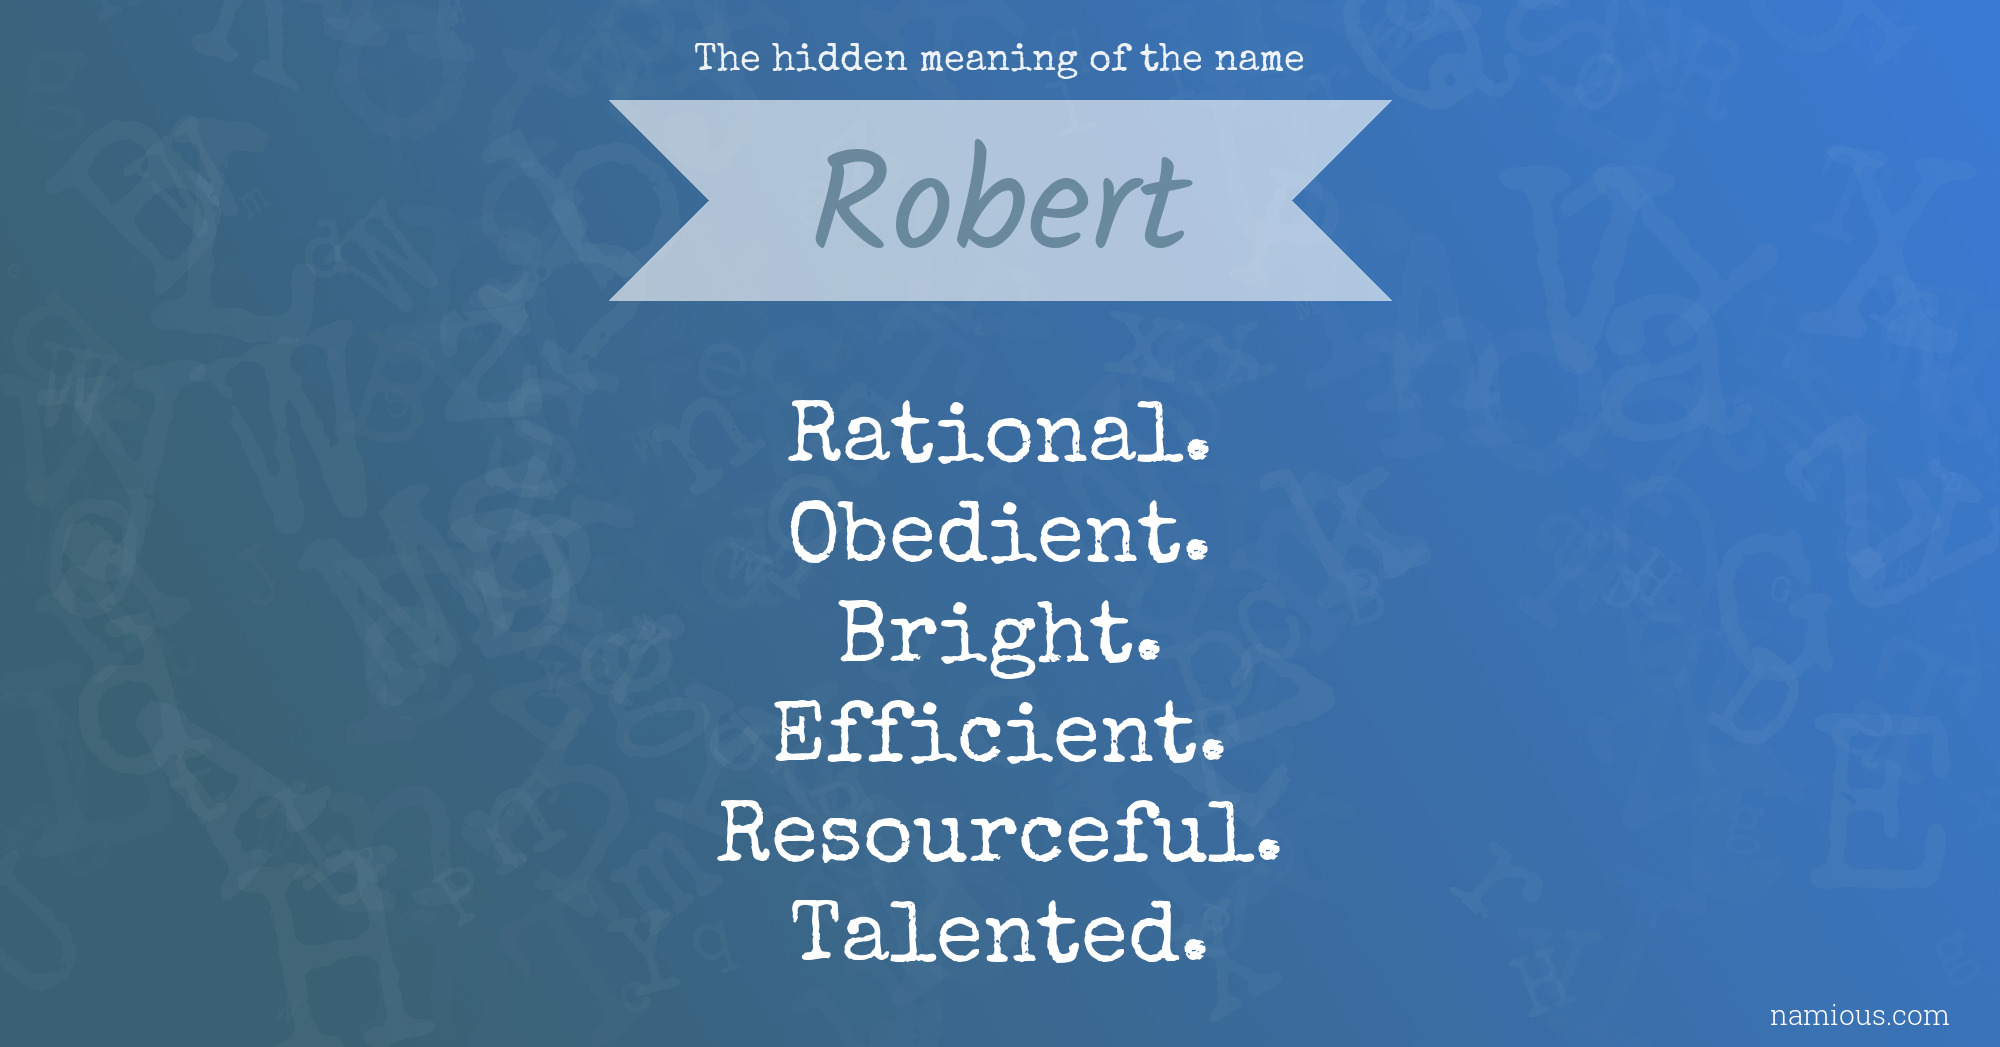 The hidden meaning of the name Robert